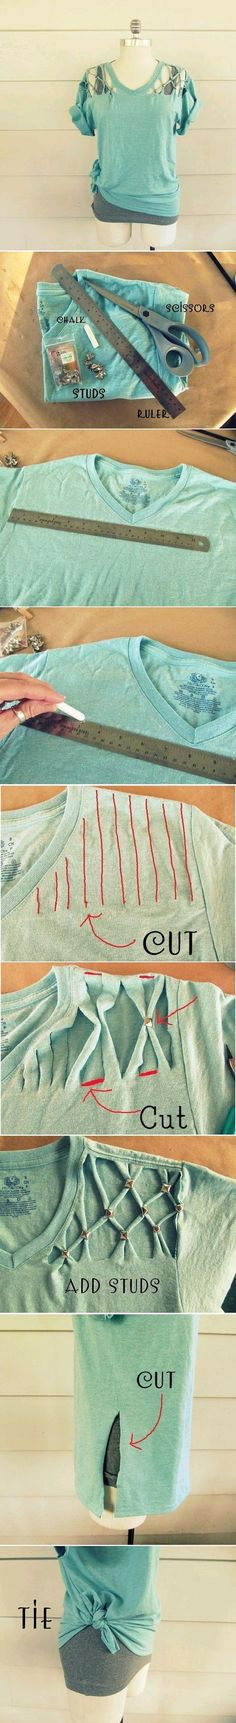 DIY Shirt diy crafts craft ideas easy crafts diy ideas diy crafts diy clothes easy diy fun diy diy shirt craft clothes craft fashion craft shirt fashion house design interior house design room design decorating before and after Sewing Hacks, Sewing Crafts, Sewing Projects, Diy Projects, Do It Yourself Baby, Do It Yourself Fashion, Fashion Bubbles, Diy Vetement, Ideias Diy